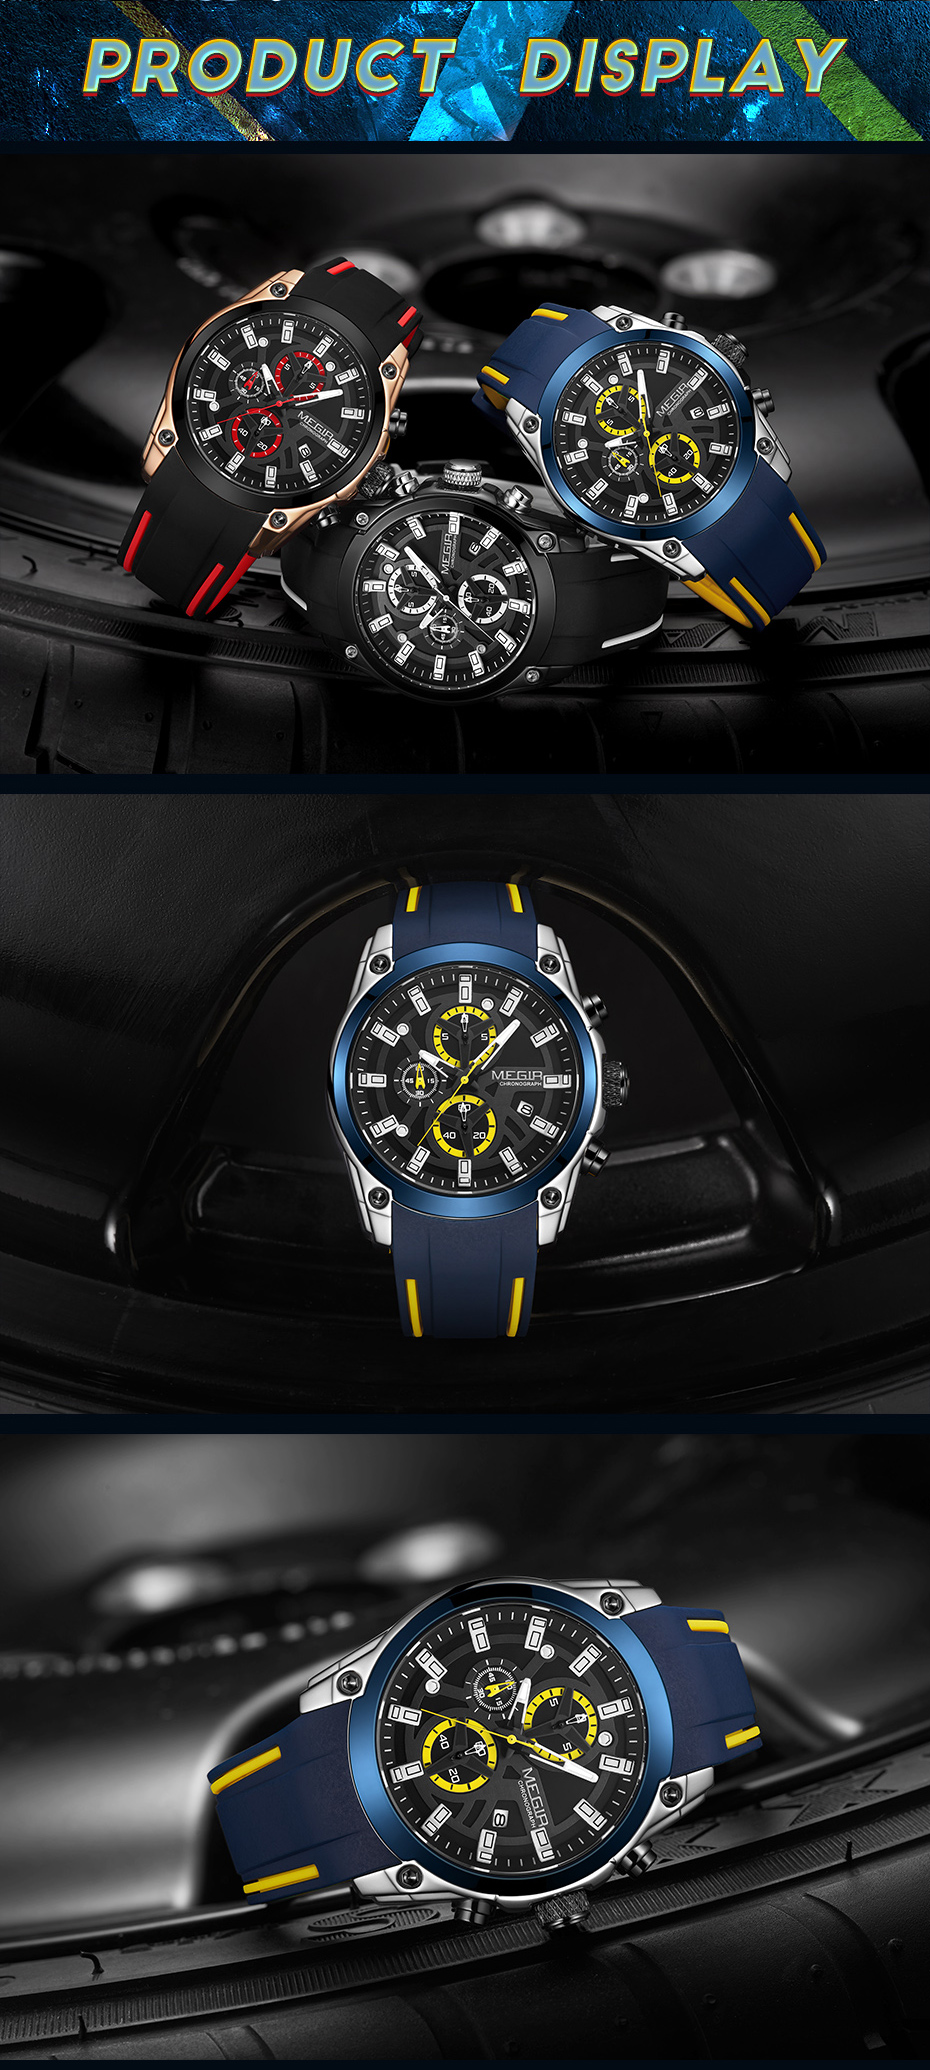 Watches for Men (12)